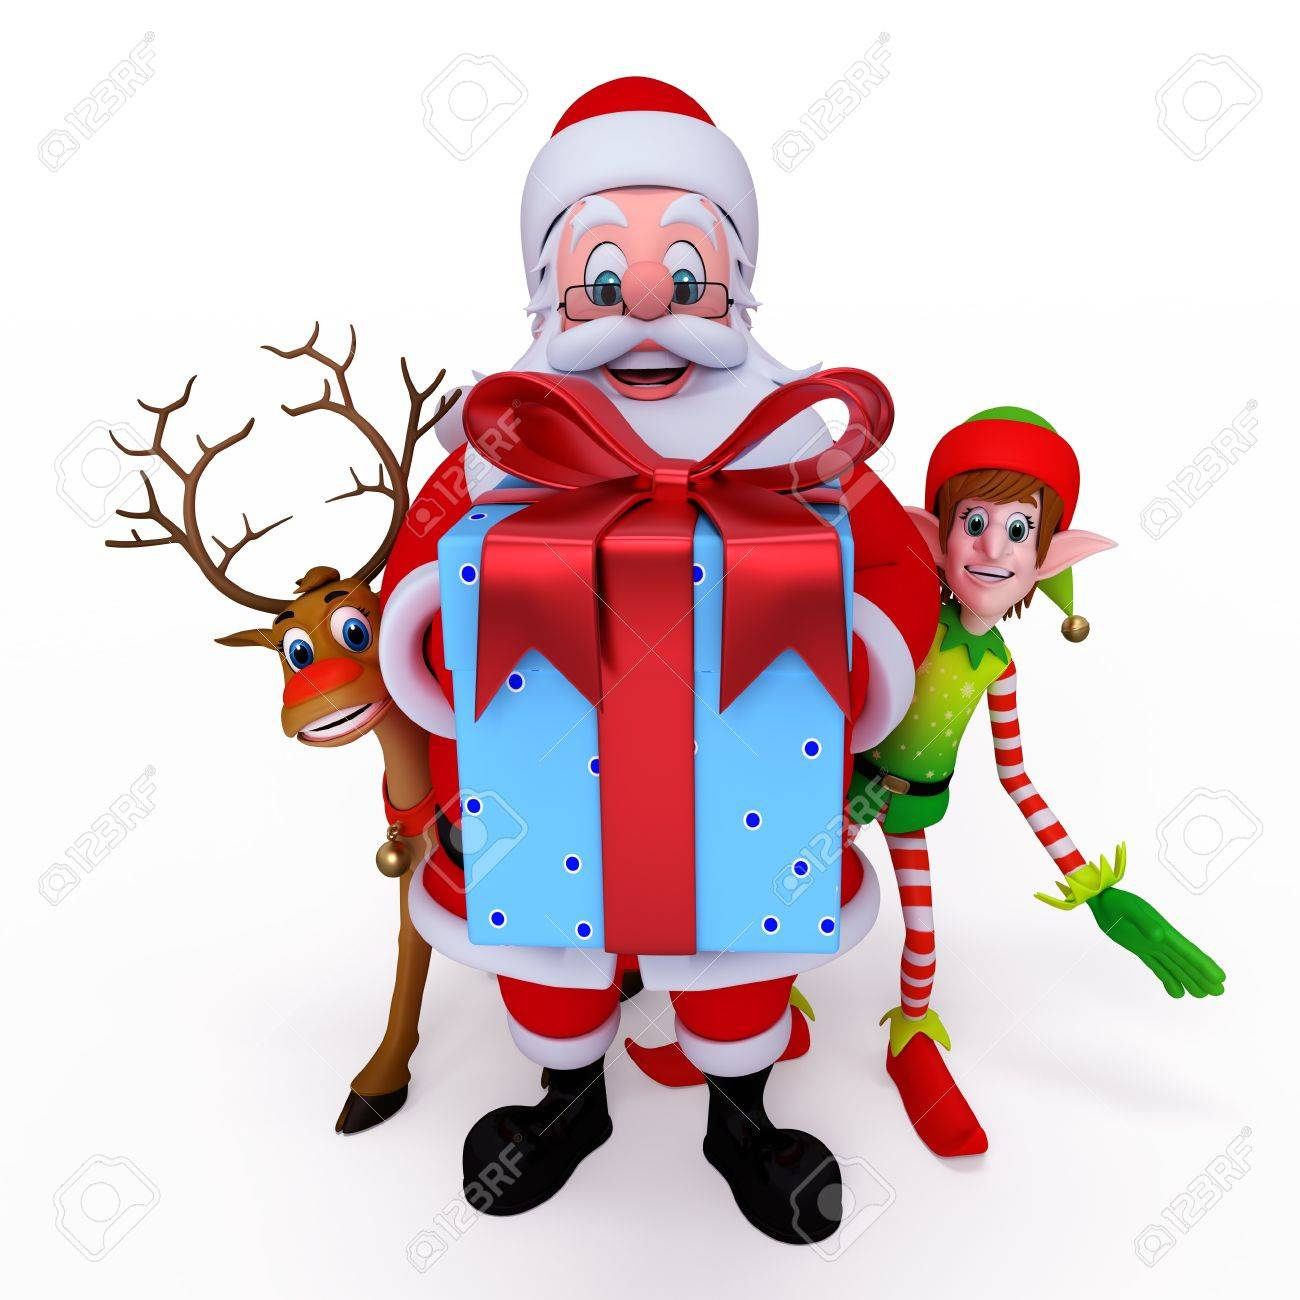 santa claus holding gift box with reindeer and elves stock photo